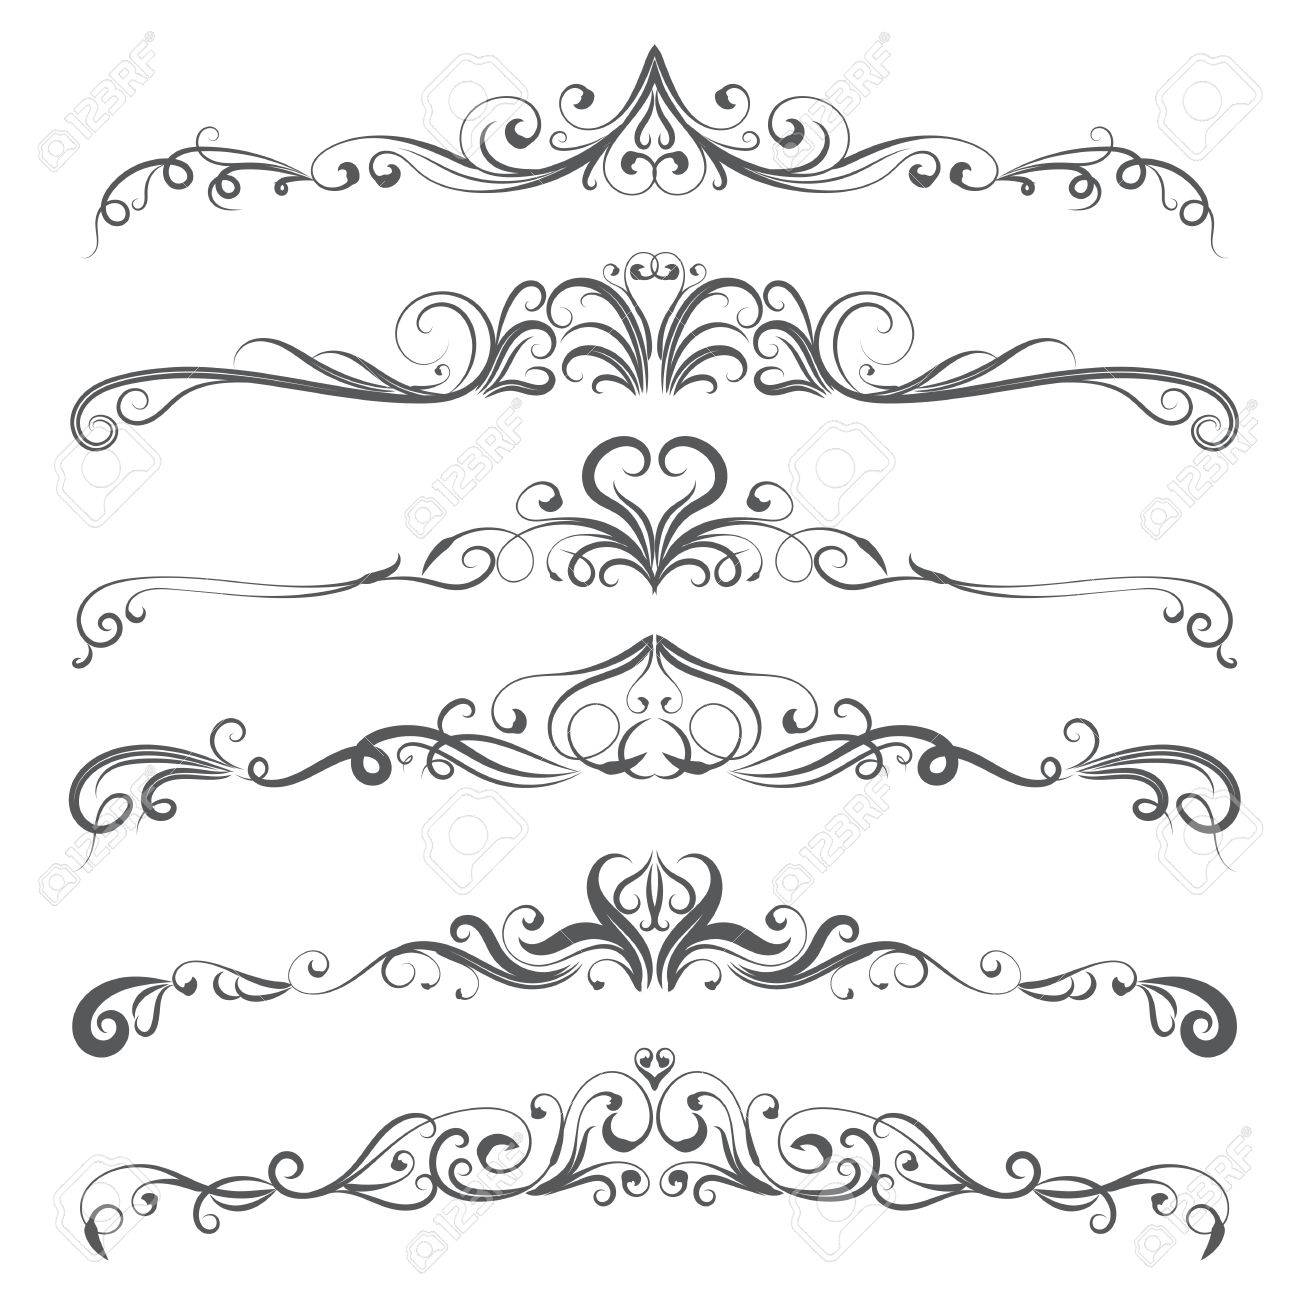 Vector Illustration Set Of Border Calligraphic Design Elements